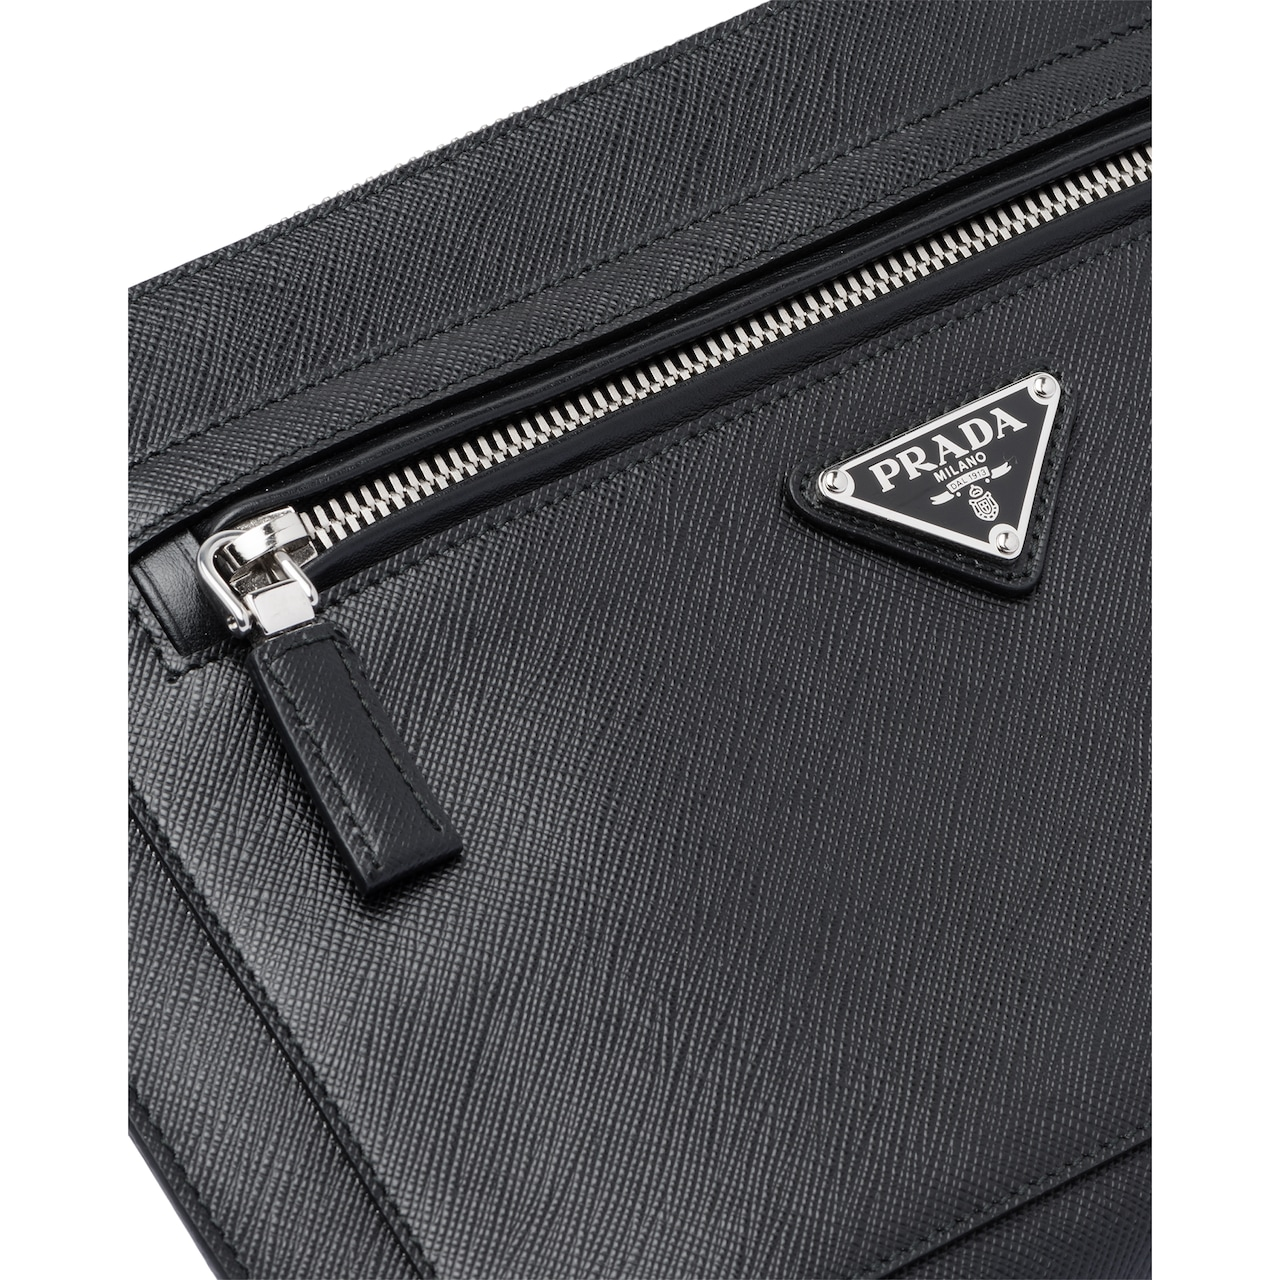 Saffiano leather pouch 6